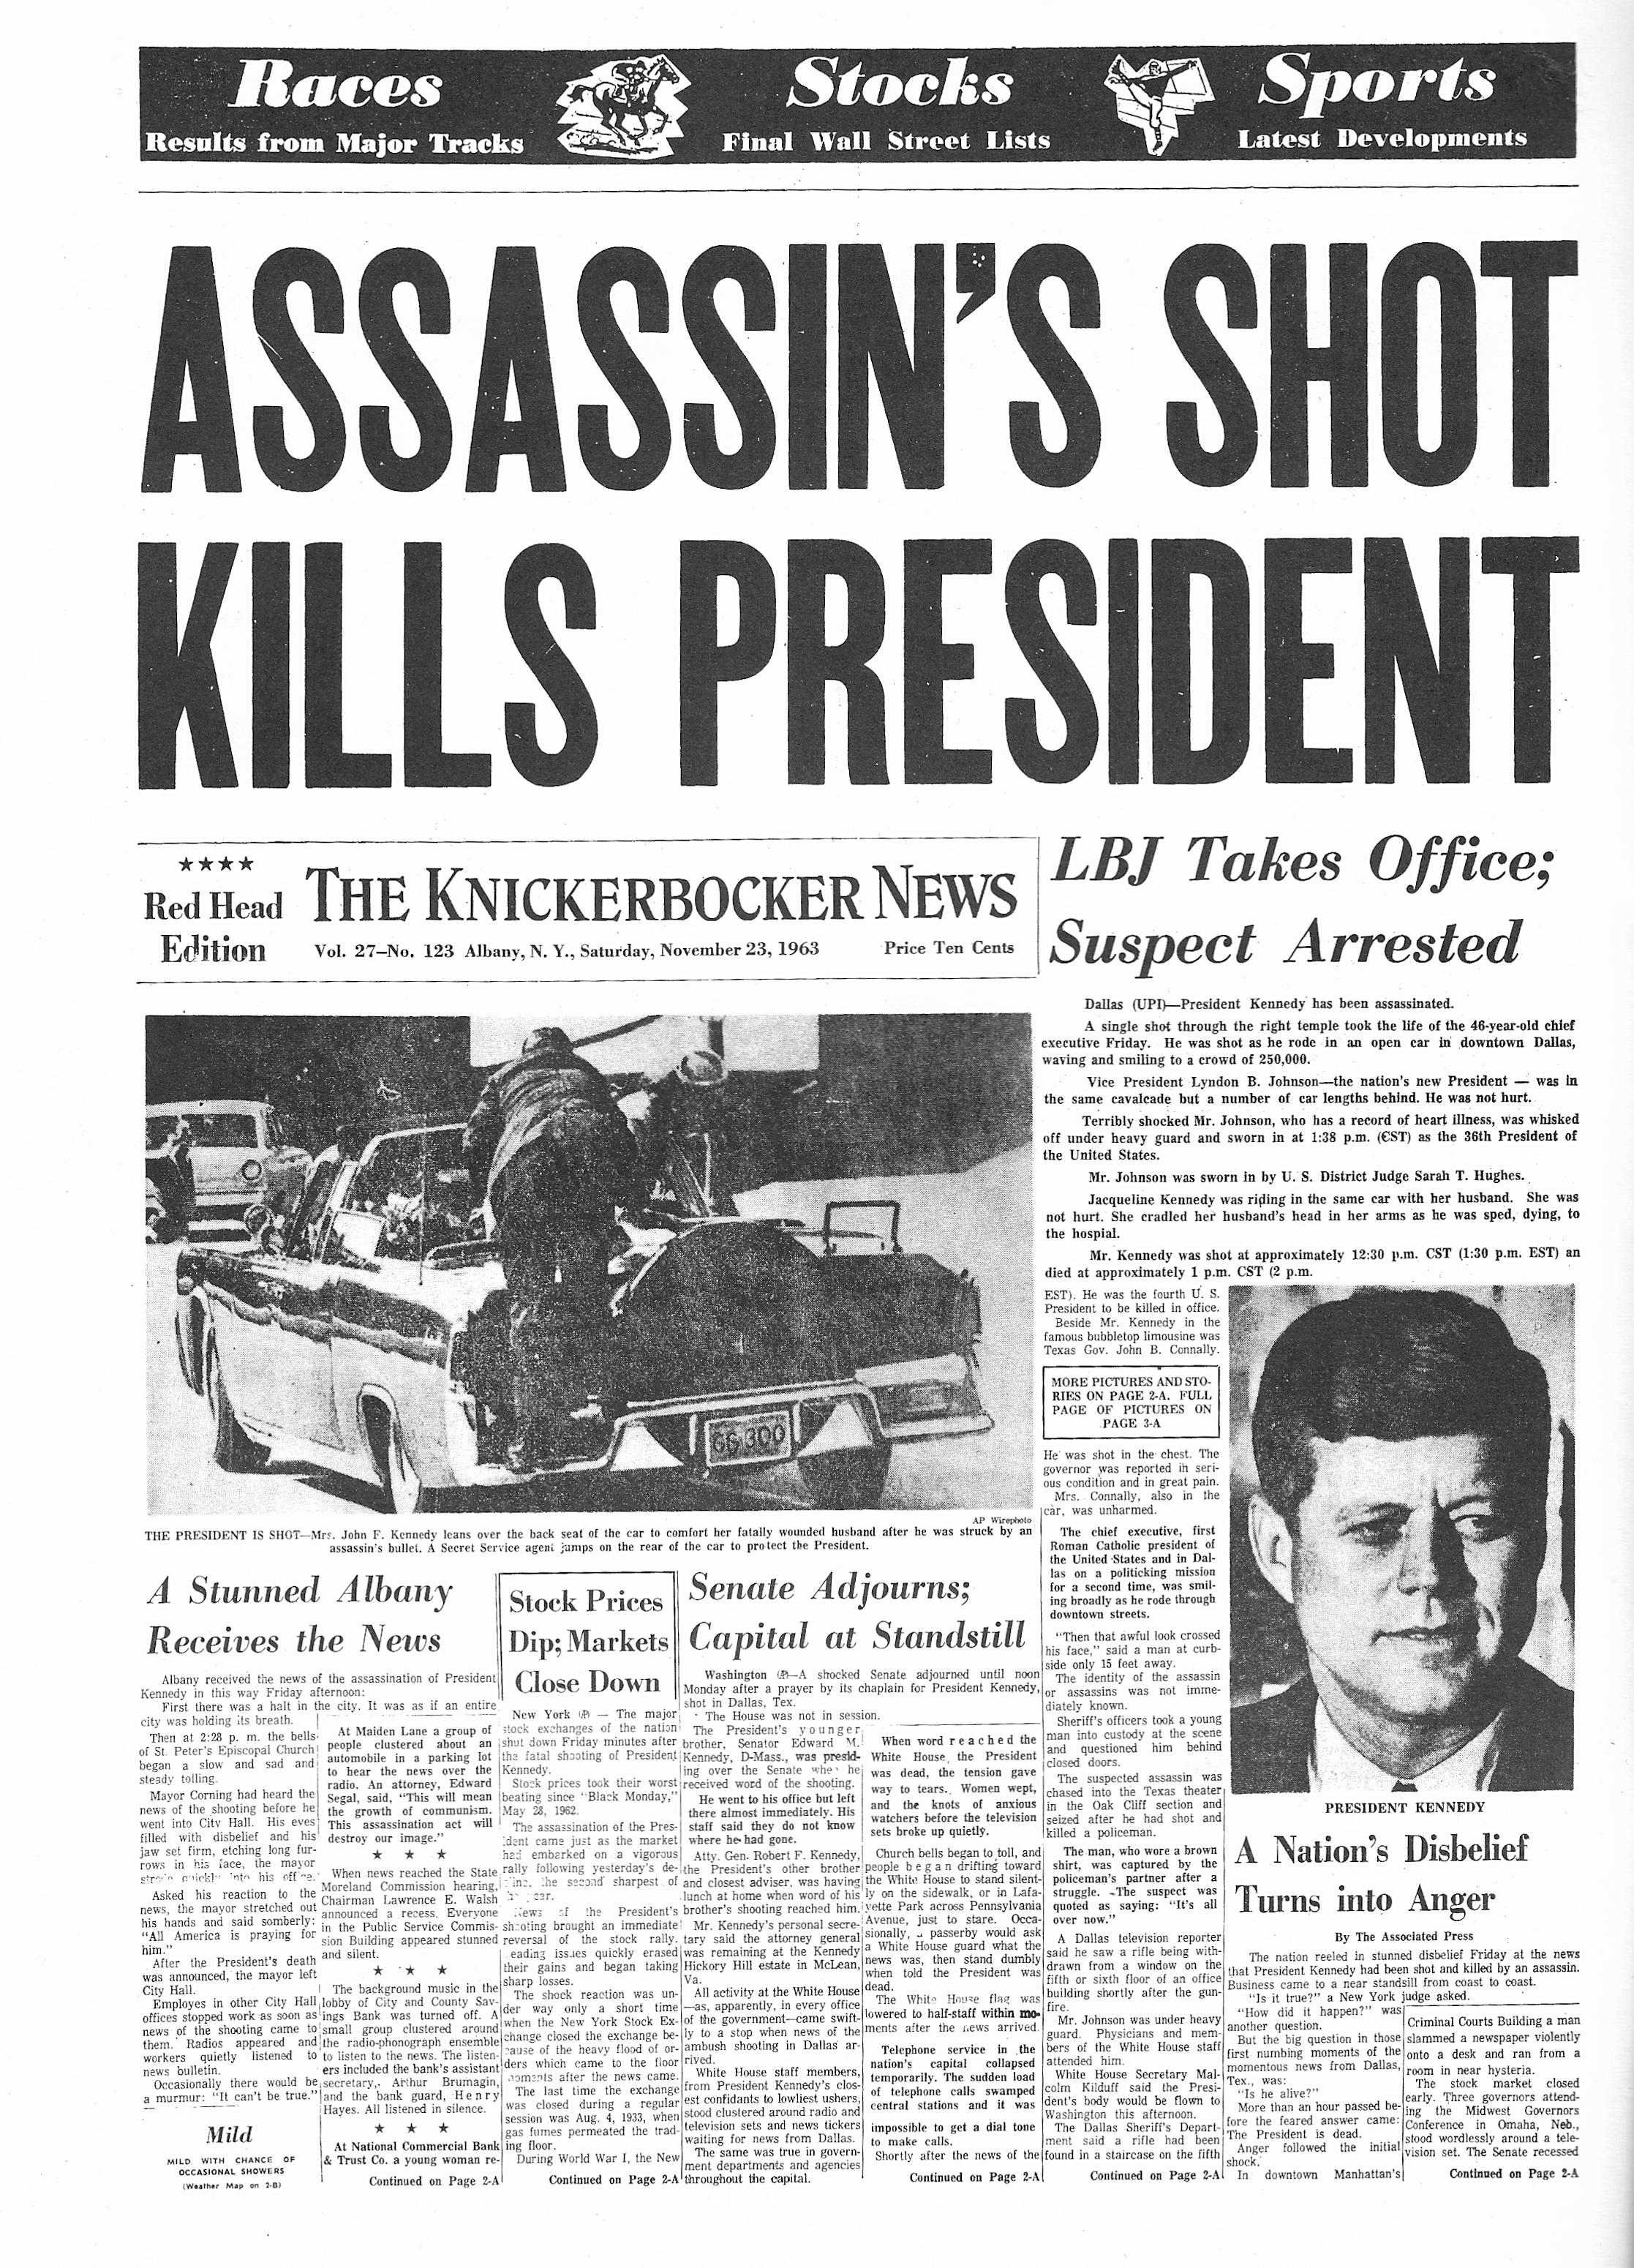 assassination of john f kennedy essay When john f kennedy was assassinated, oliver stone was a teenager and  as  robert robbins and jerrod post argue in their essay political paranoia as.